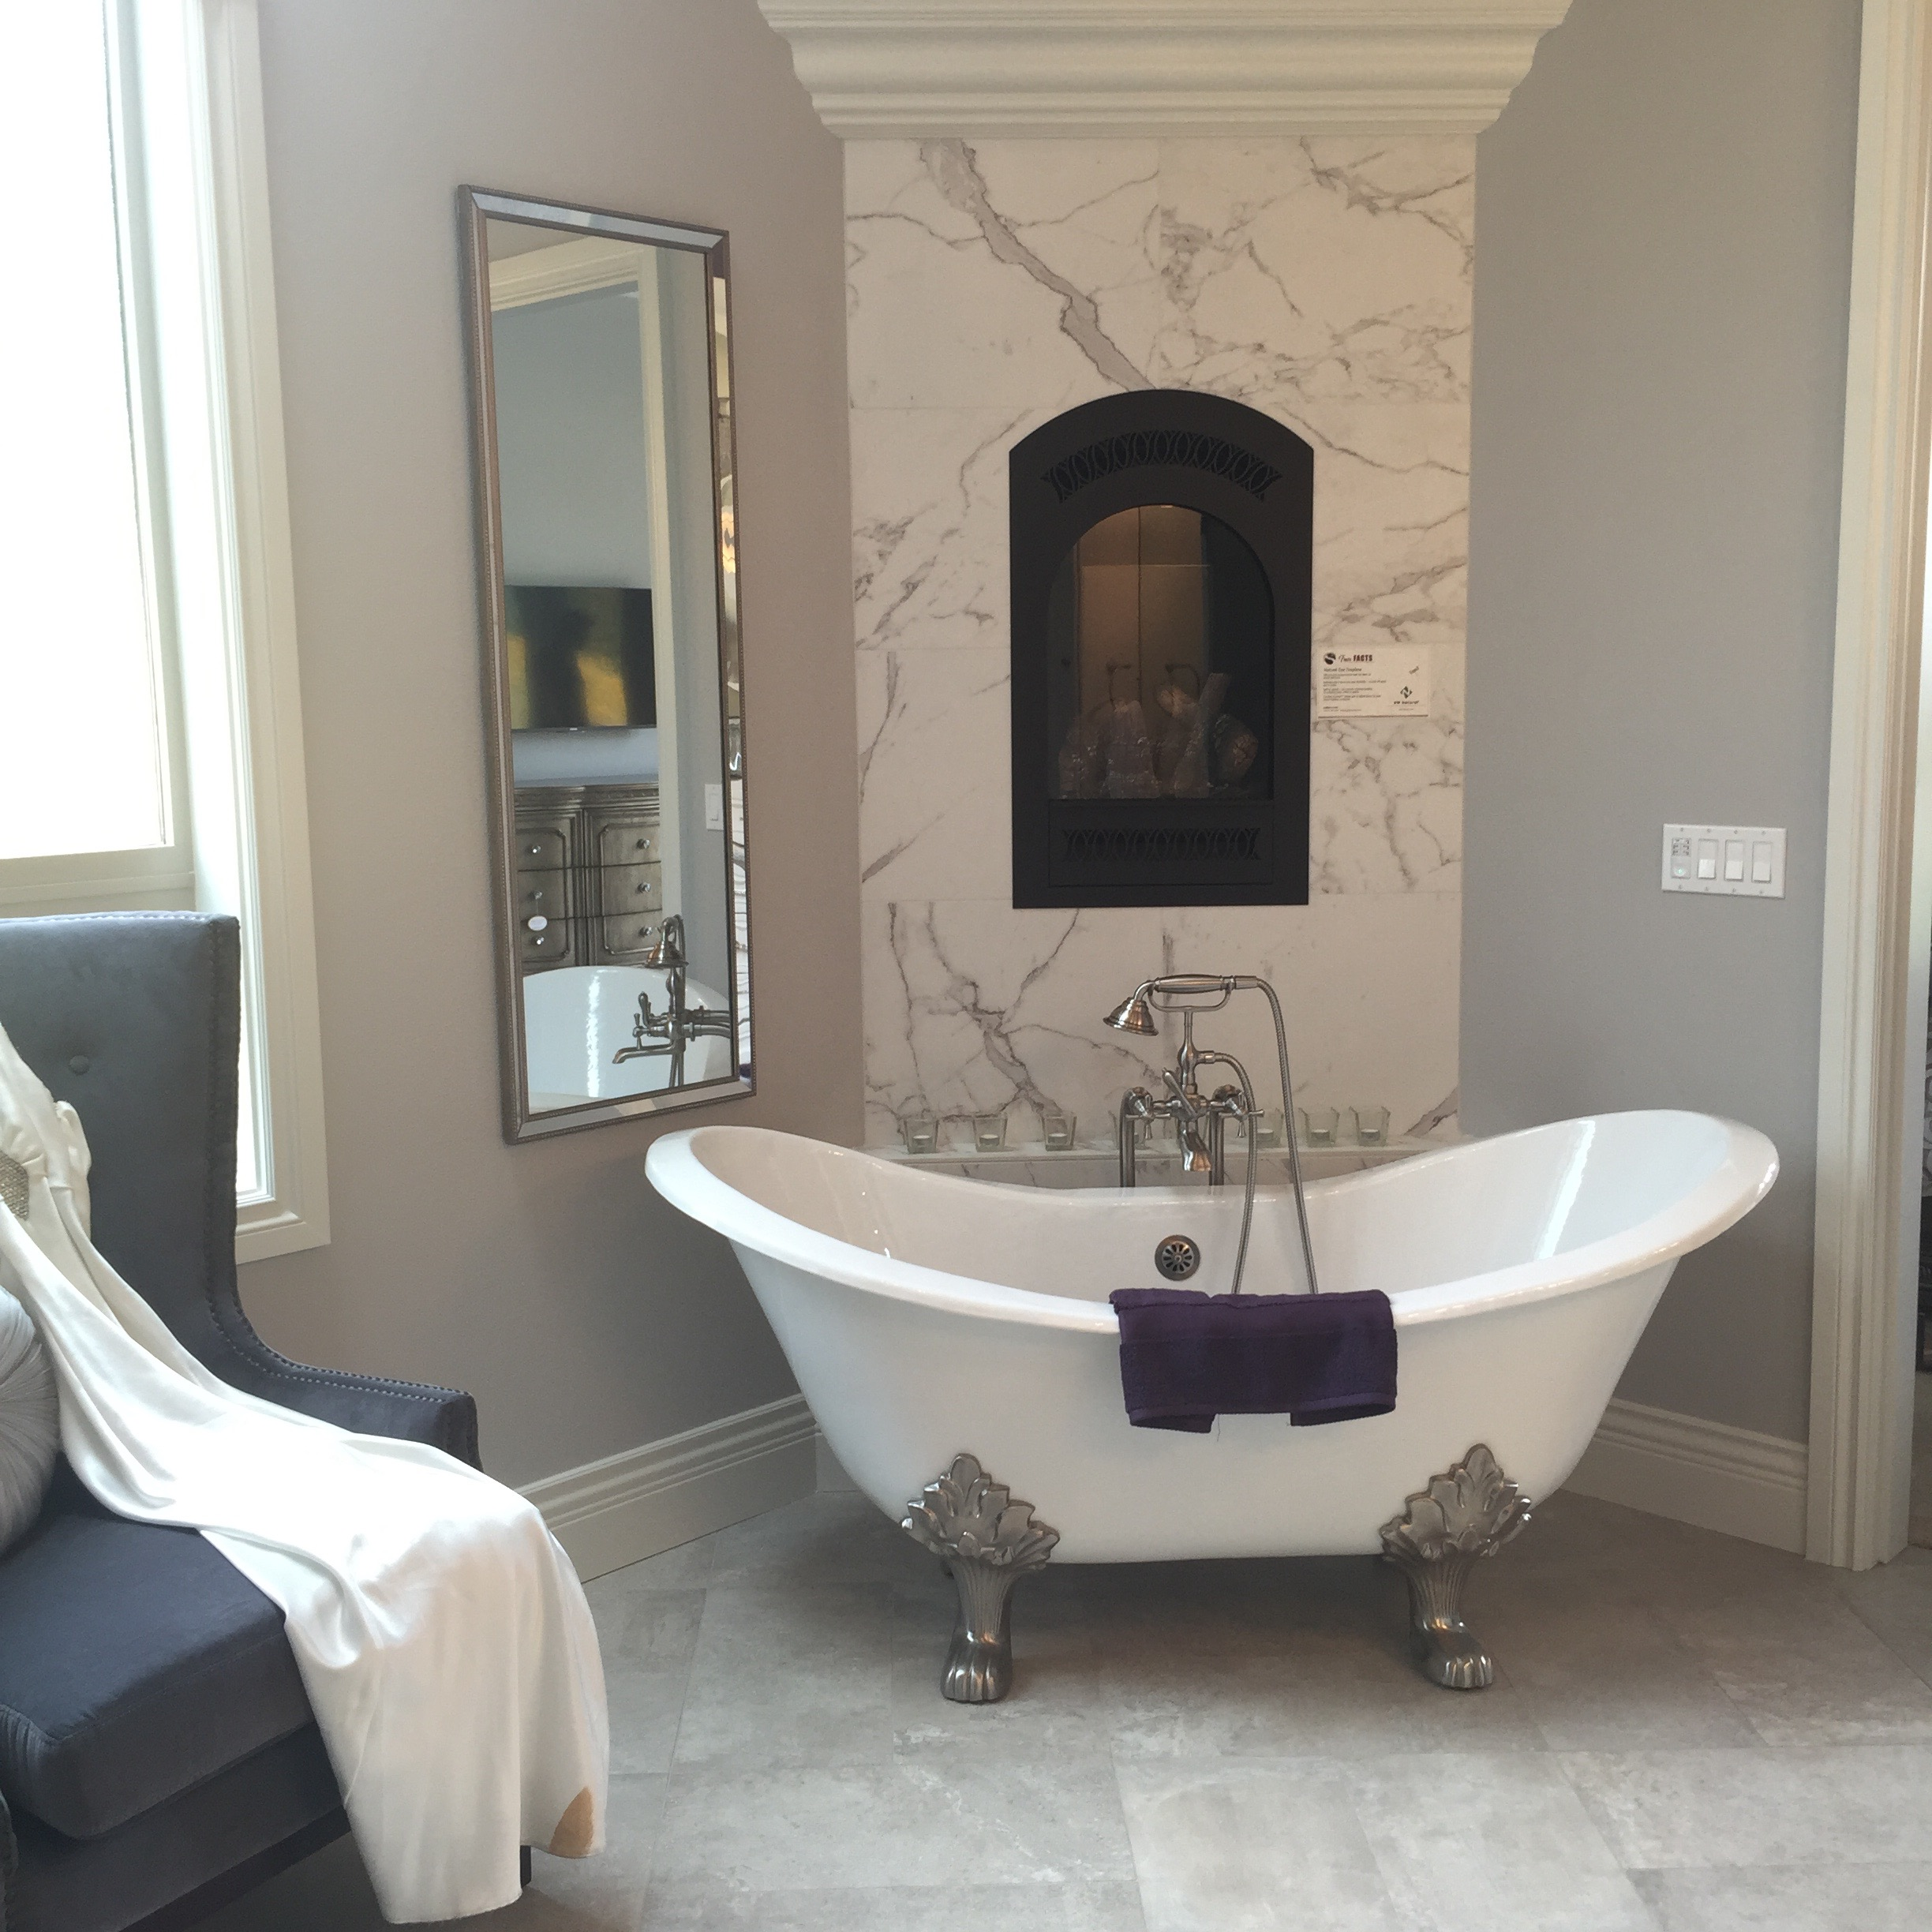 Can I spend literally all of my time in this bathroom please??